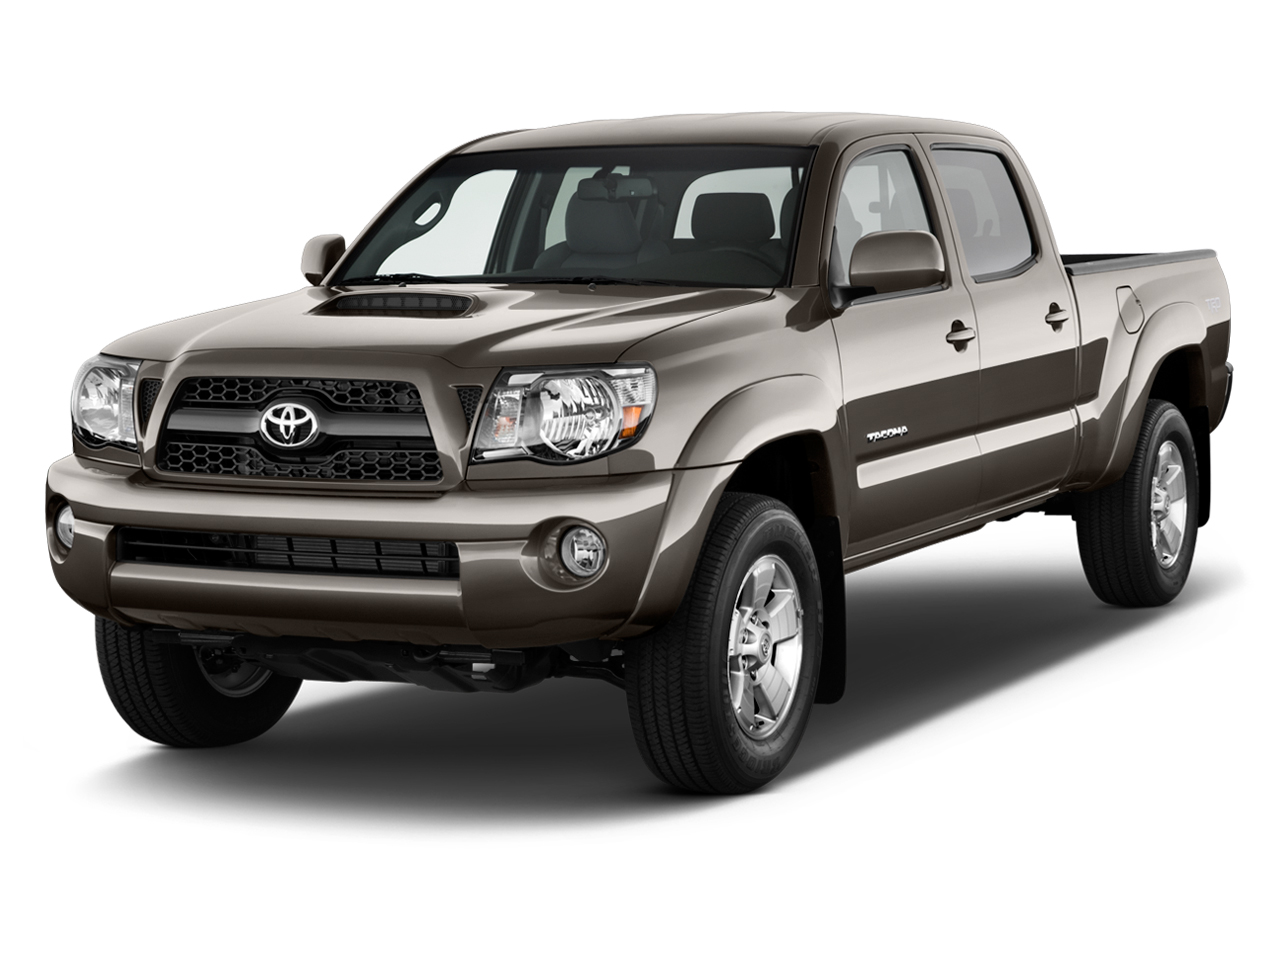 2011 toyota tacoma gas mileage the car connection. Black Bedroom Furniture Sets. Home Design Ideas